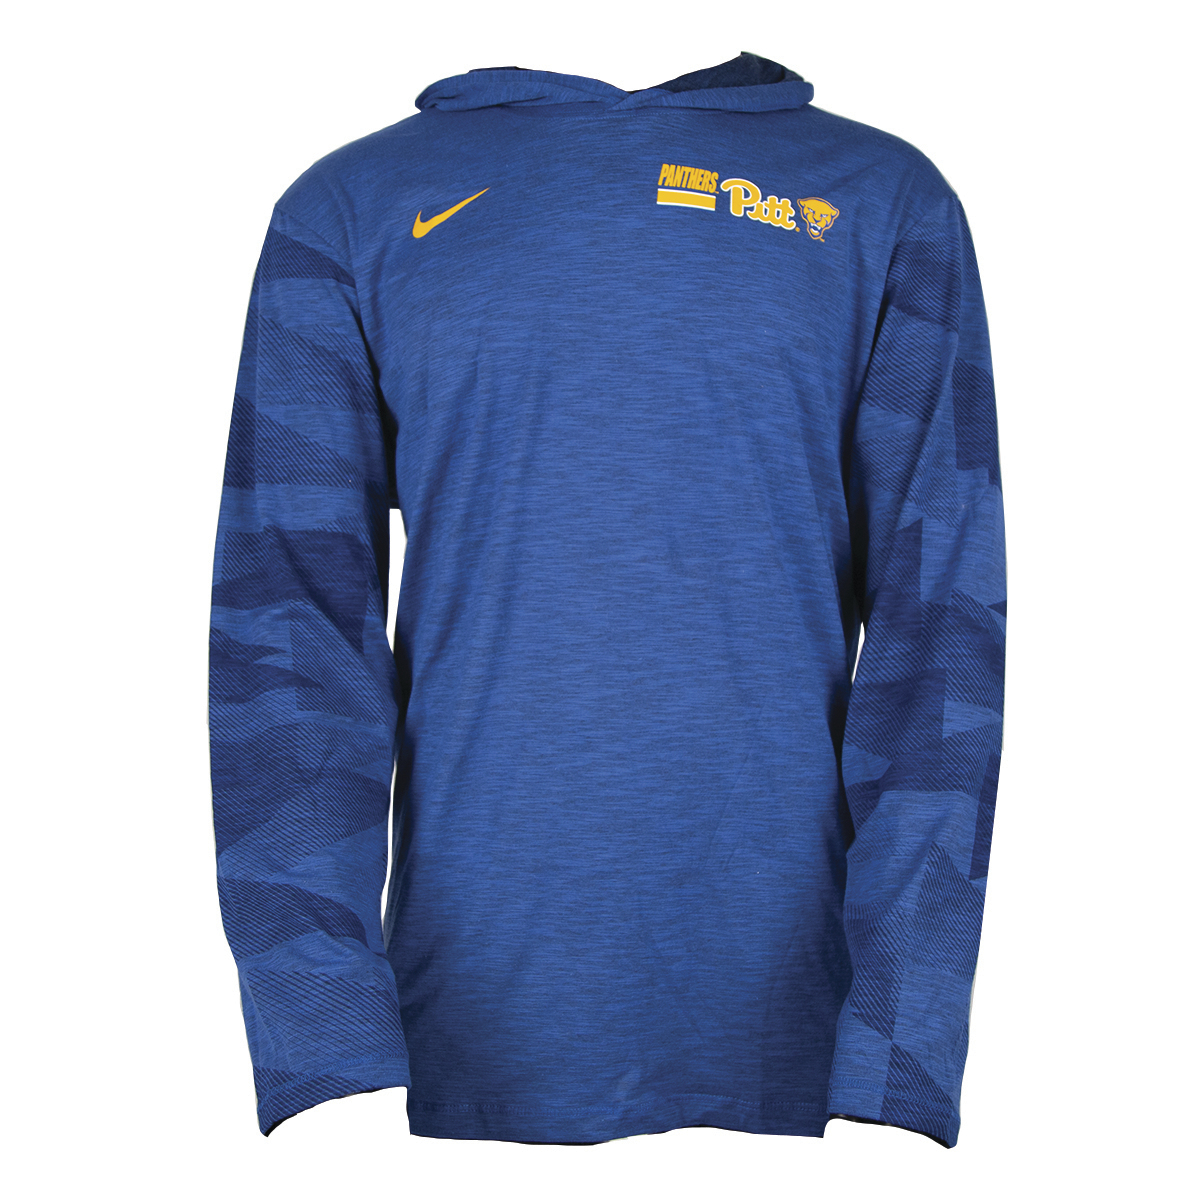 Cover Image For Nike Hood Long Sleeve Pitt Panthers - Royal